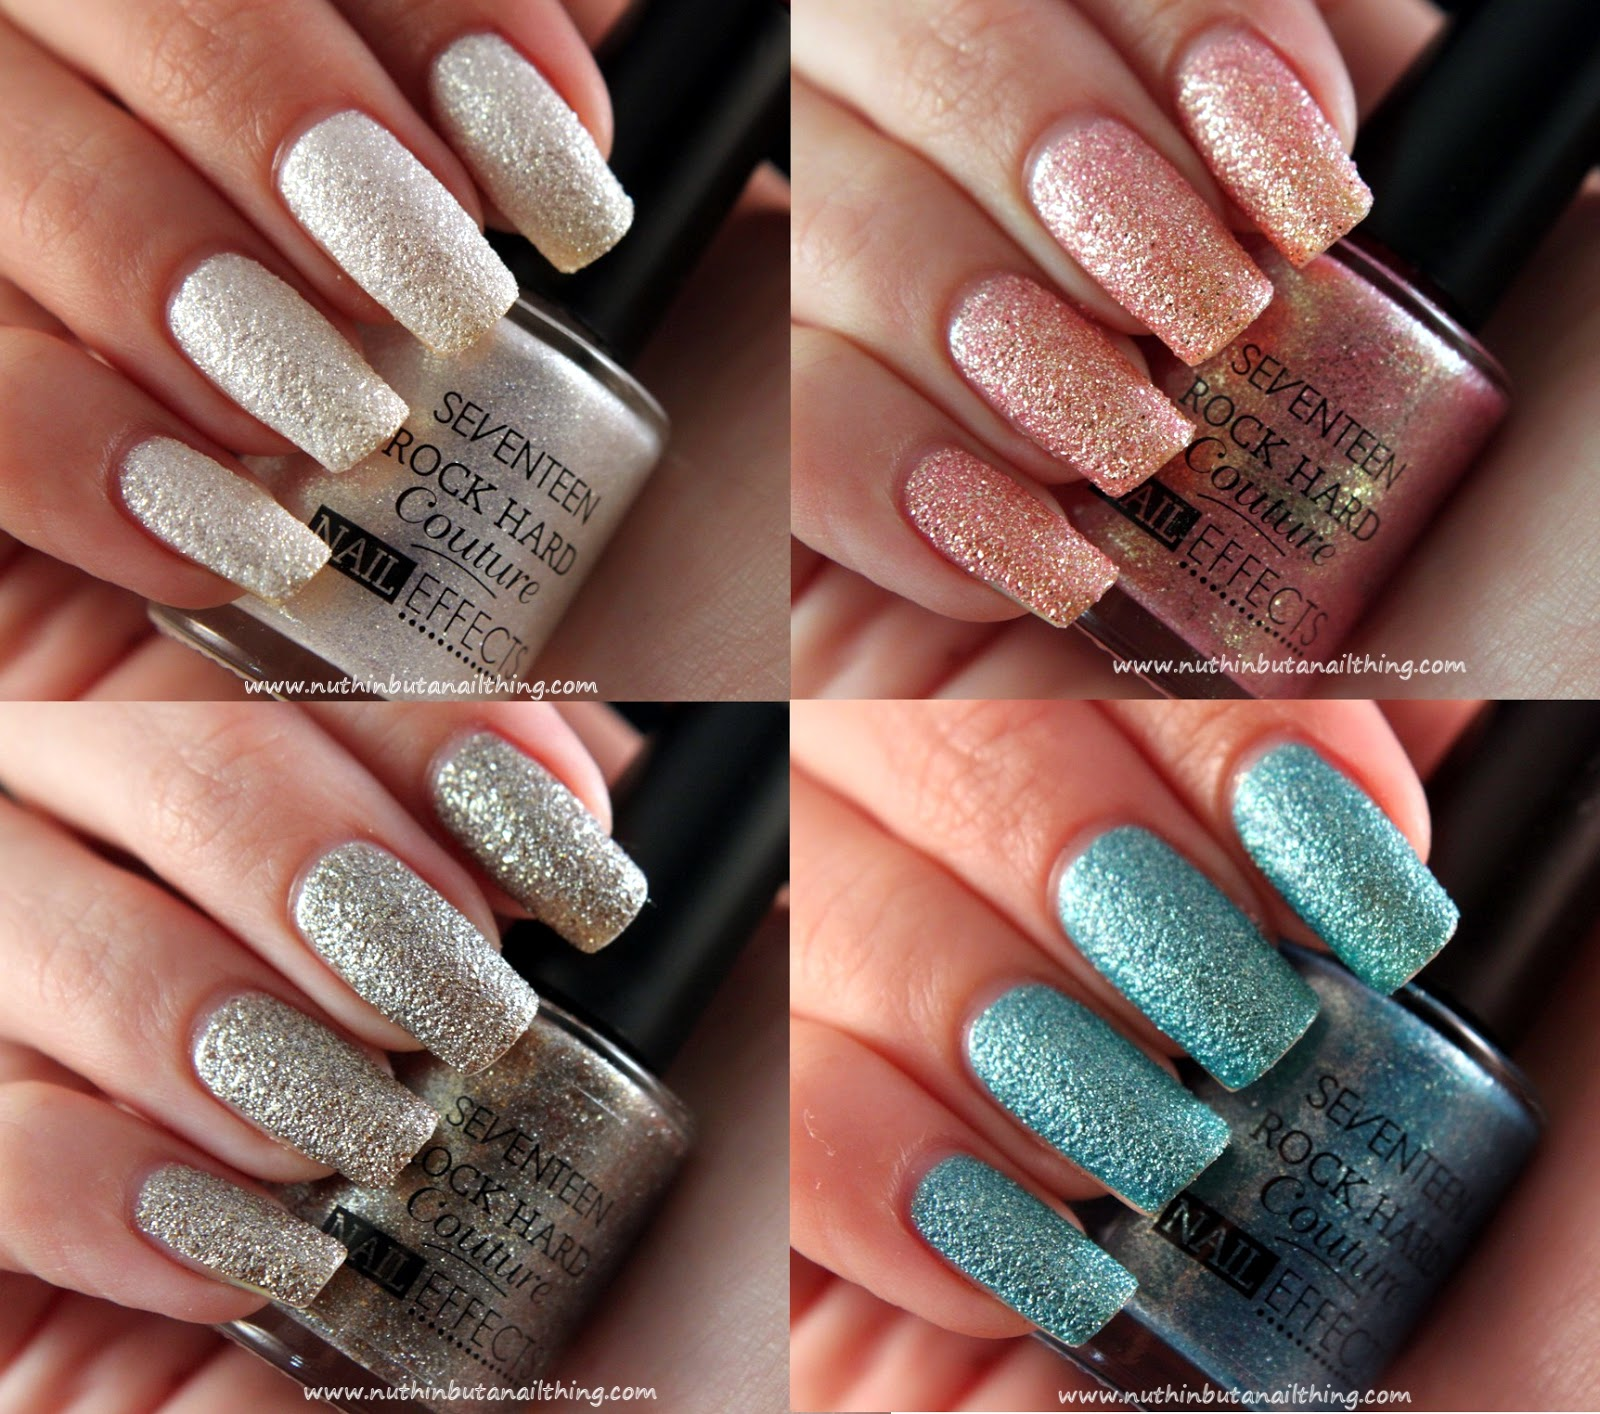 Seven Rock Hard Couture Nail Effects Swatches